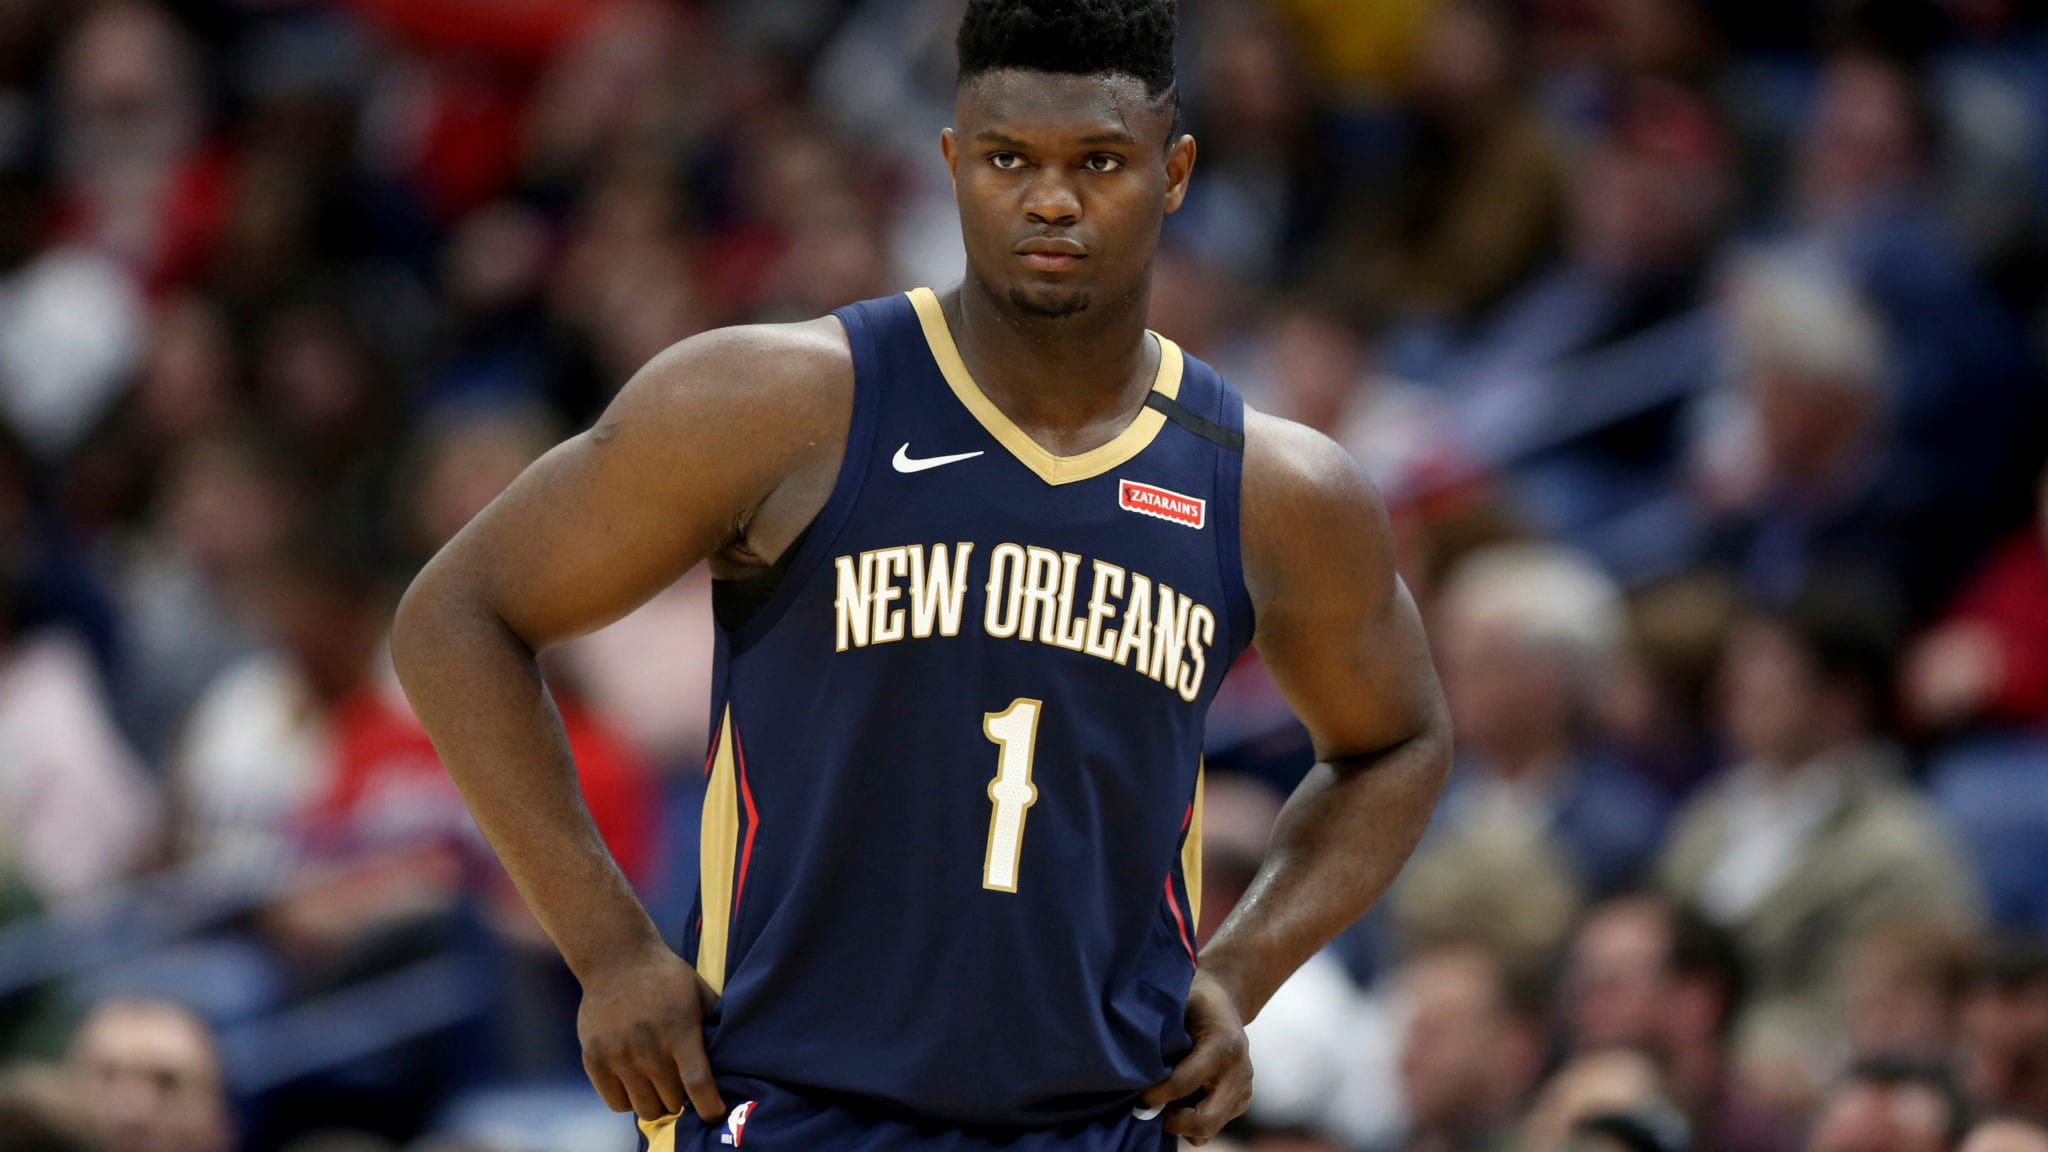 Zion Williamson Says He's Going to 'Get Body Where it Needs to Be' in Offseason